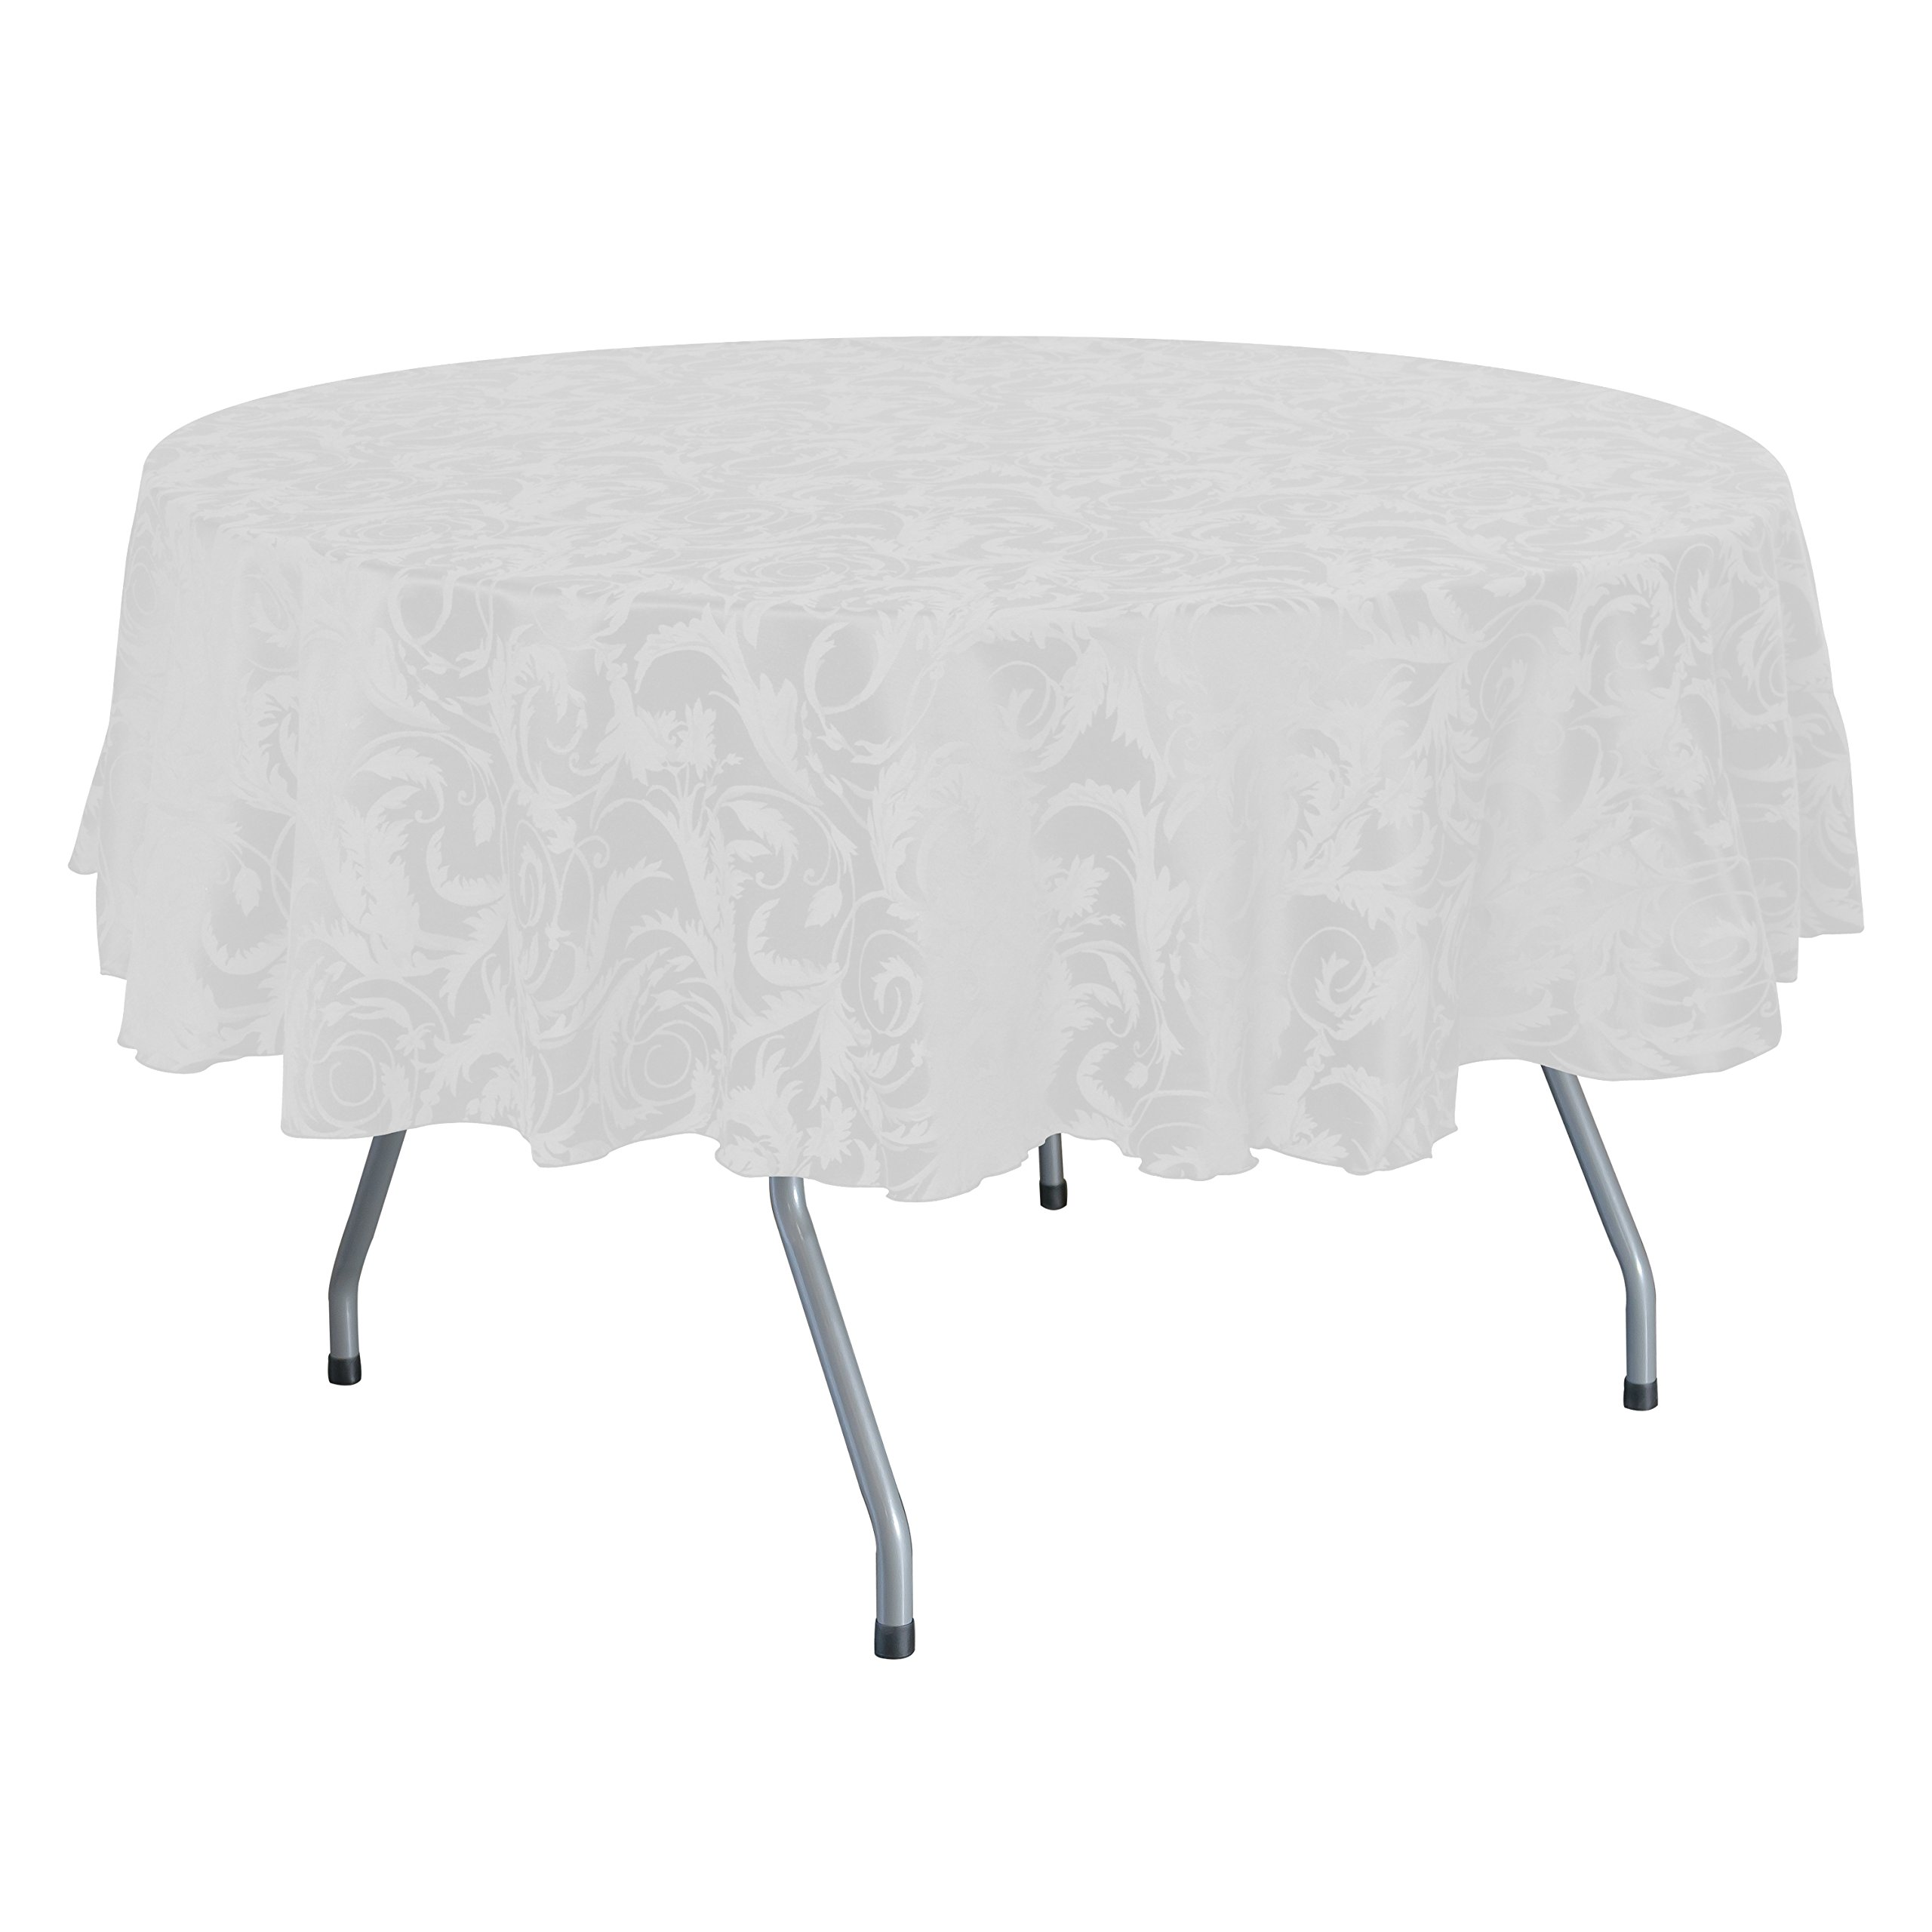 Ultimate Textile (5 Pack) Damask Melrose 60 x 120 Inch Oval Tablecloth - Home Dining Collection - Floral Leaf Scroll Jacquard Design, White by Ultimate Textile (Image #1)